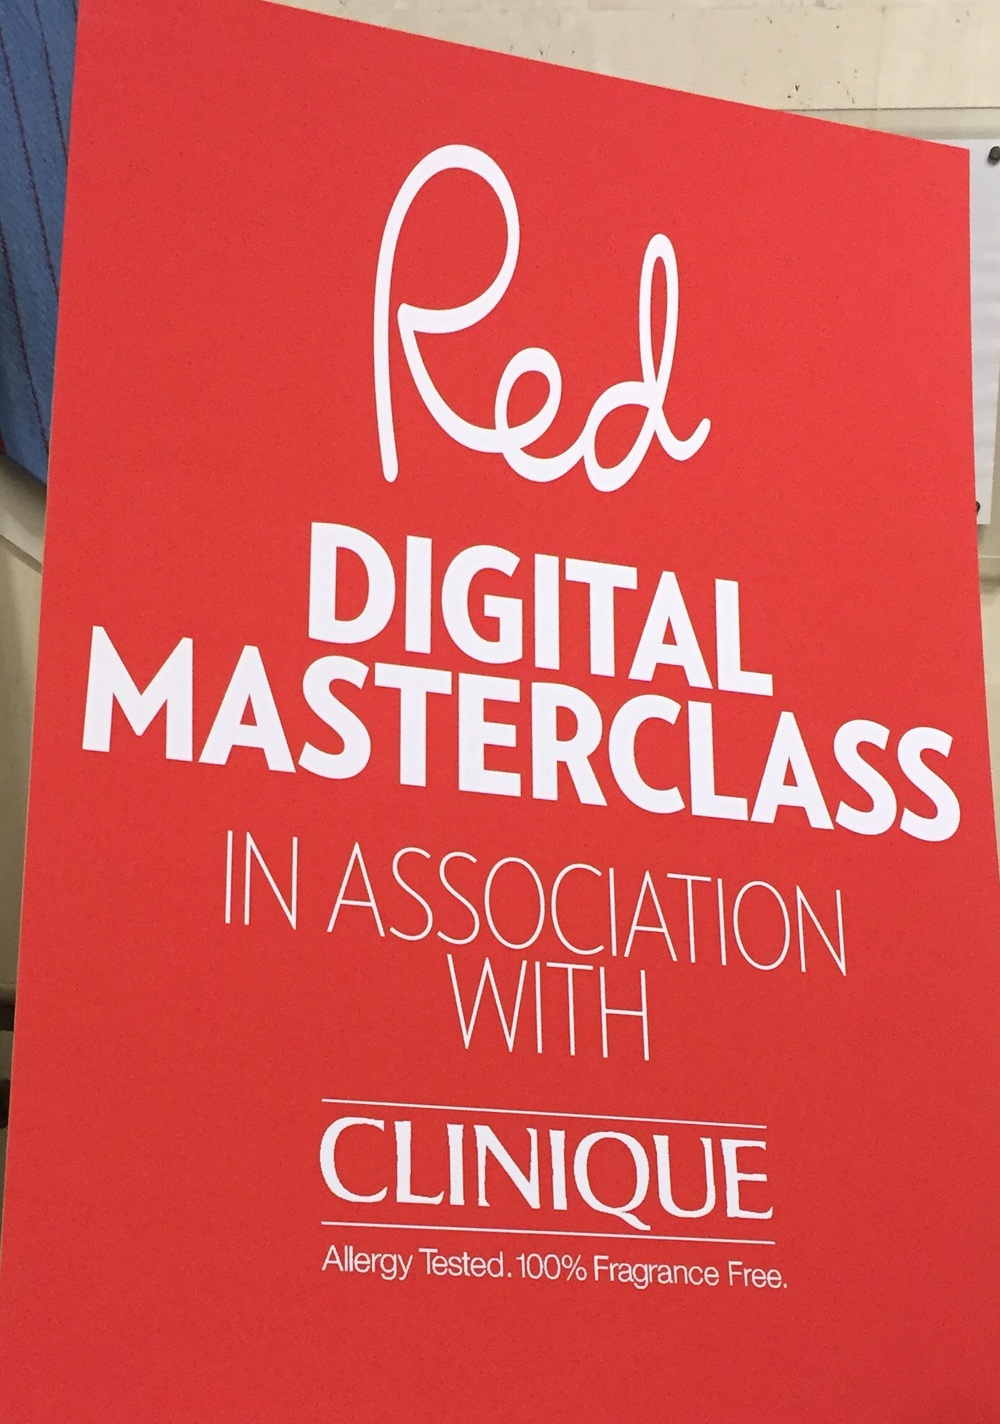 Red's Digital Masterclass at the British Library's Conference Centre.